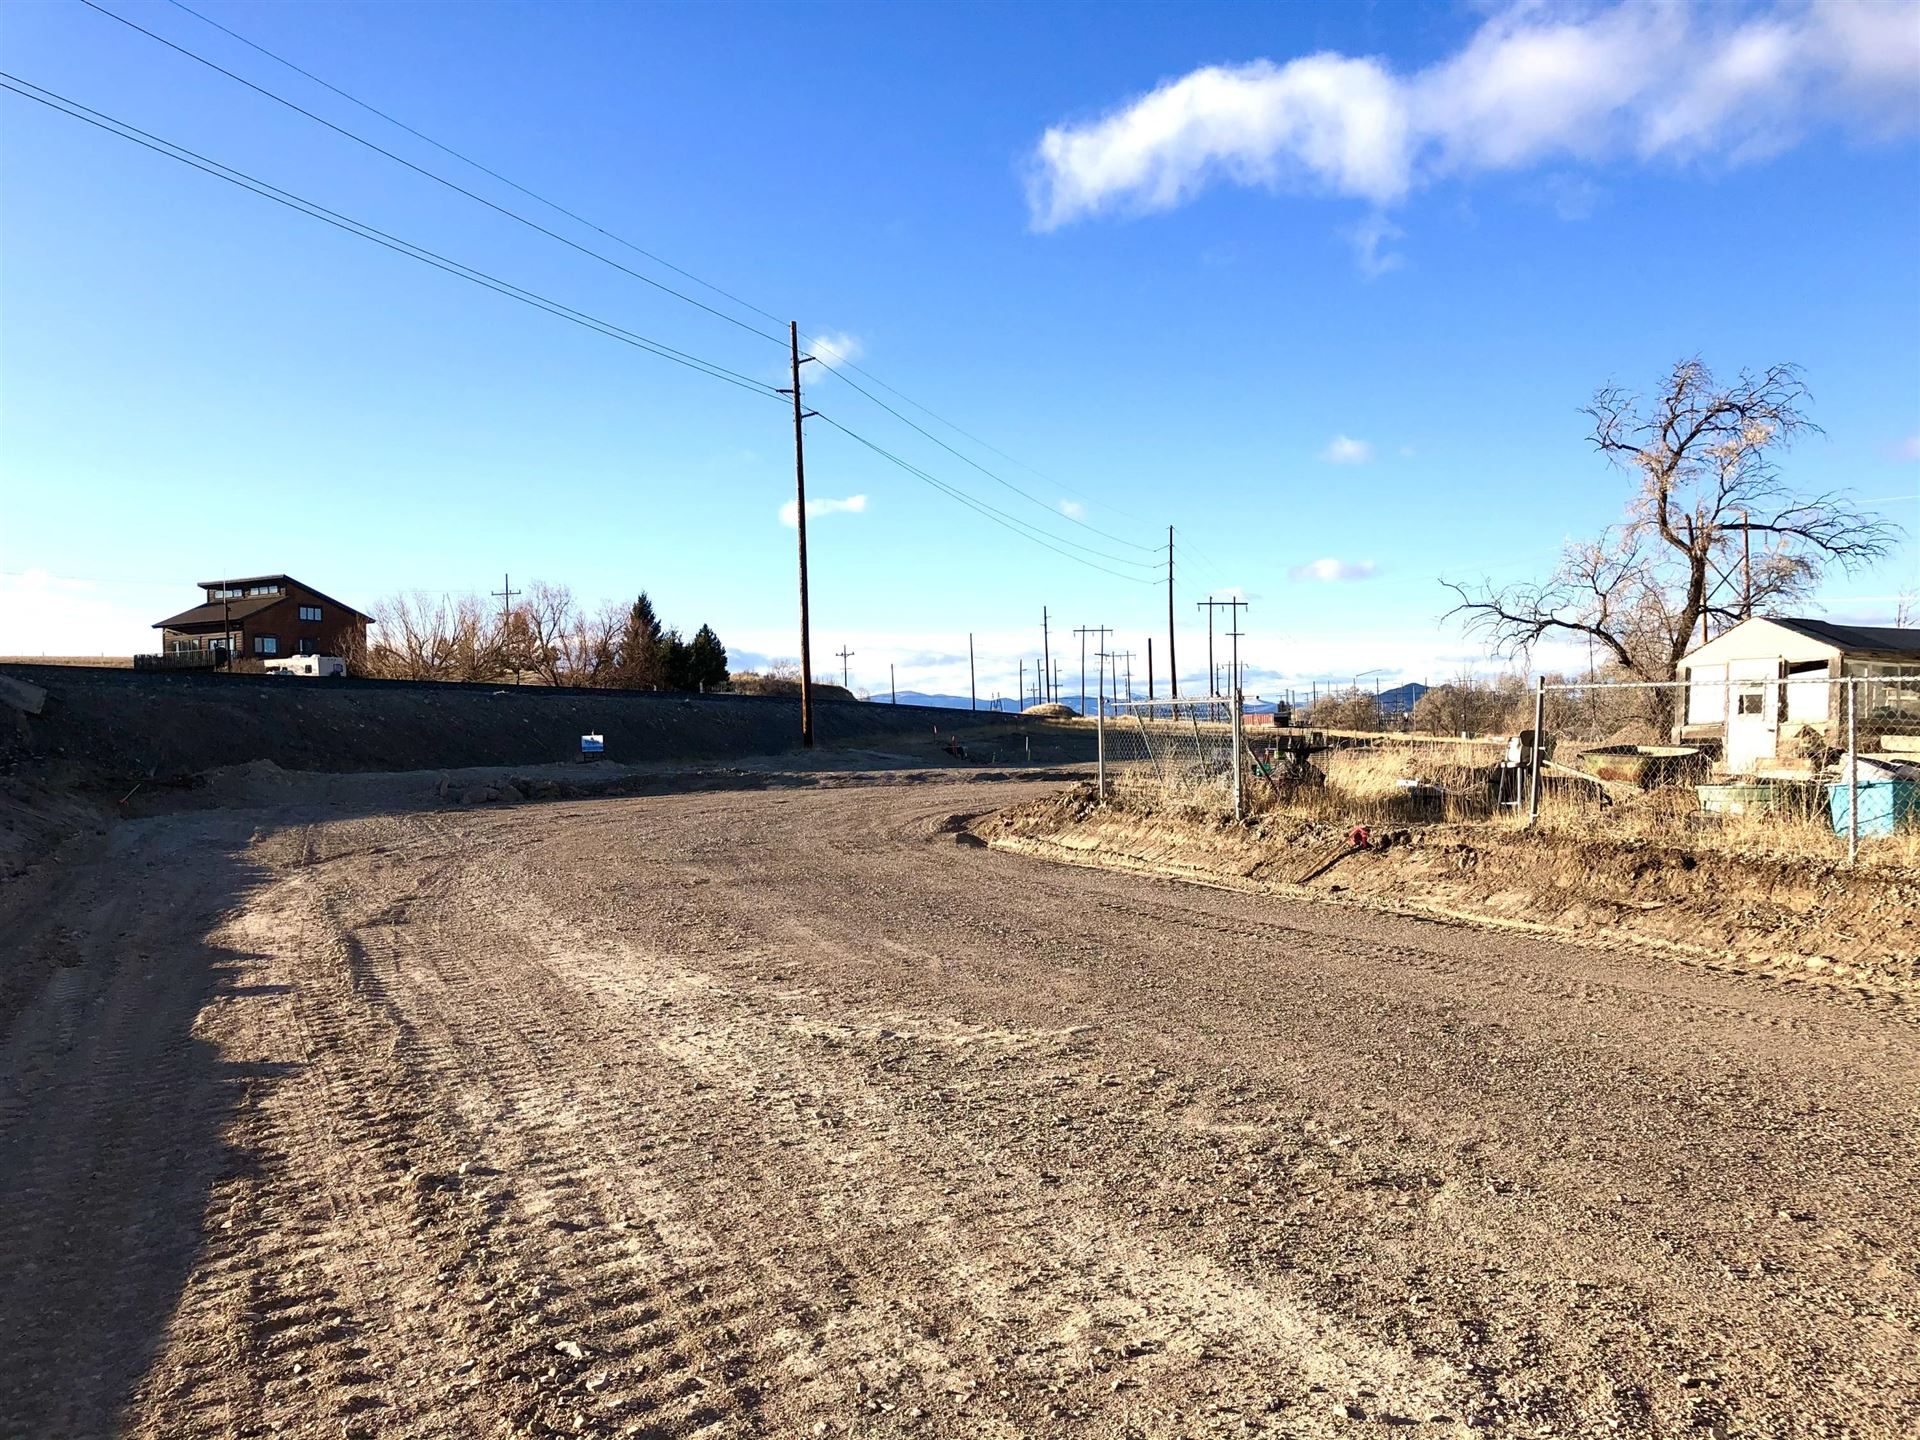 Photo of Tbd South Seventh St., East Helena, MT 59635 (MLS # 22100551)